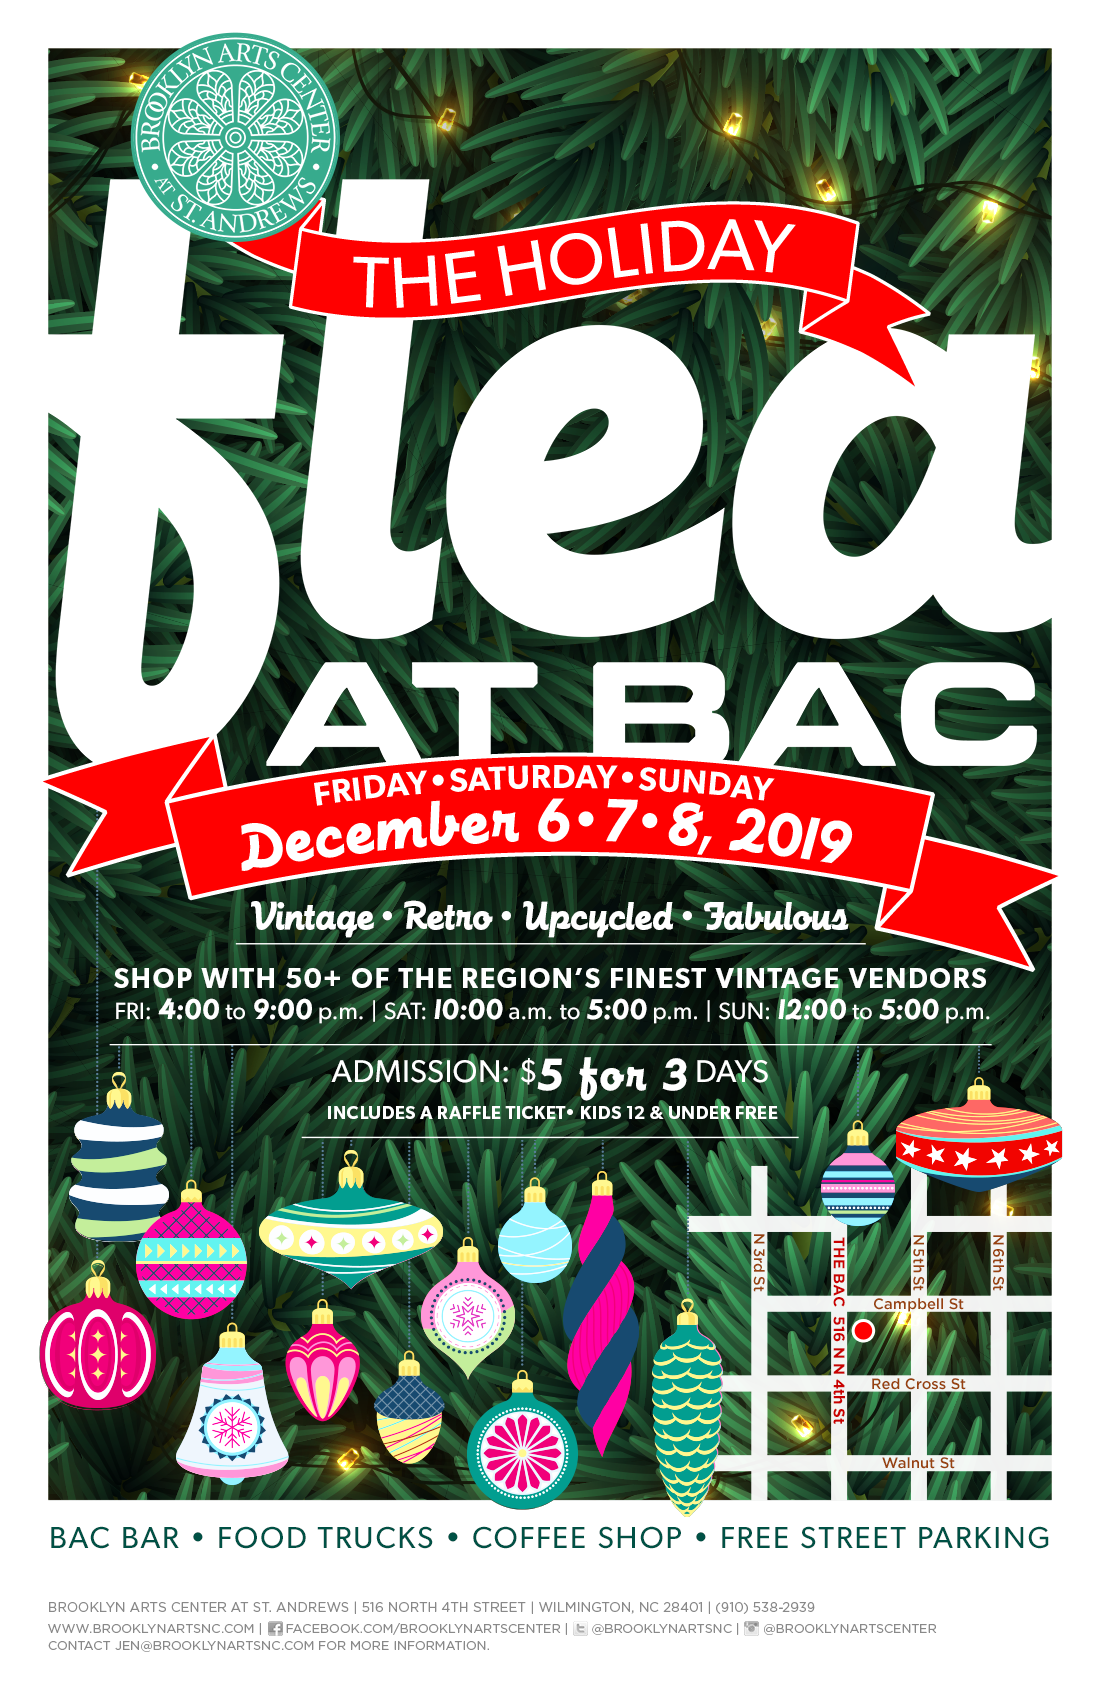 BAC_2217-holiday flea 2019-poster_rev05-19.png